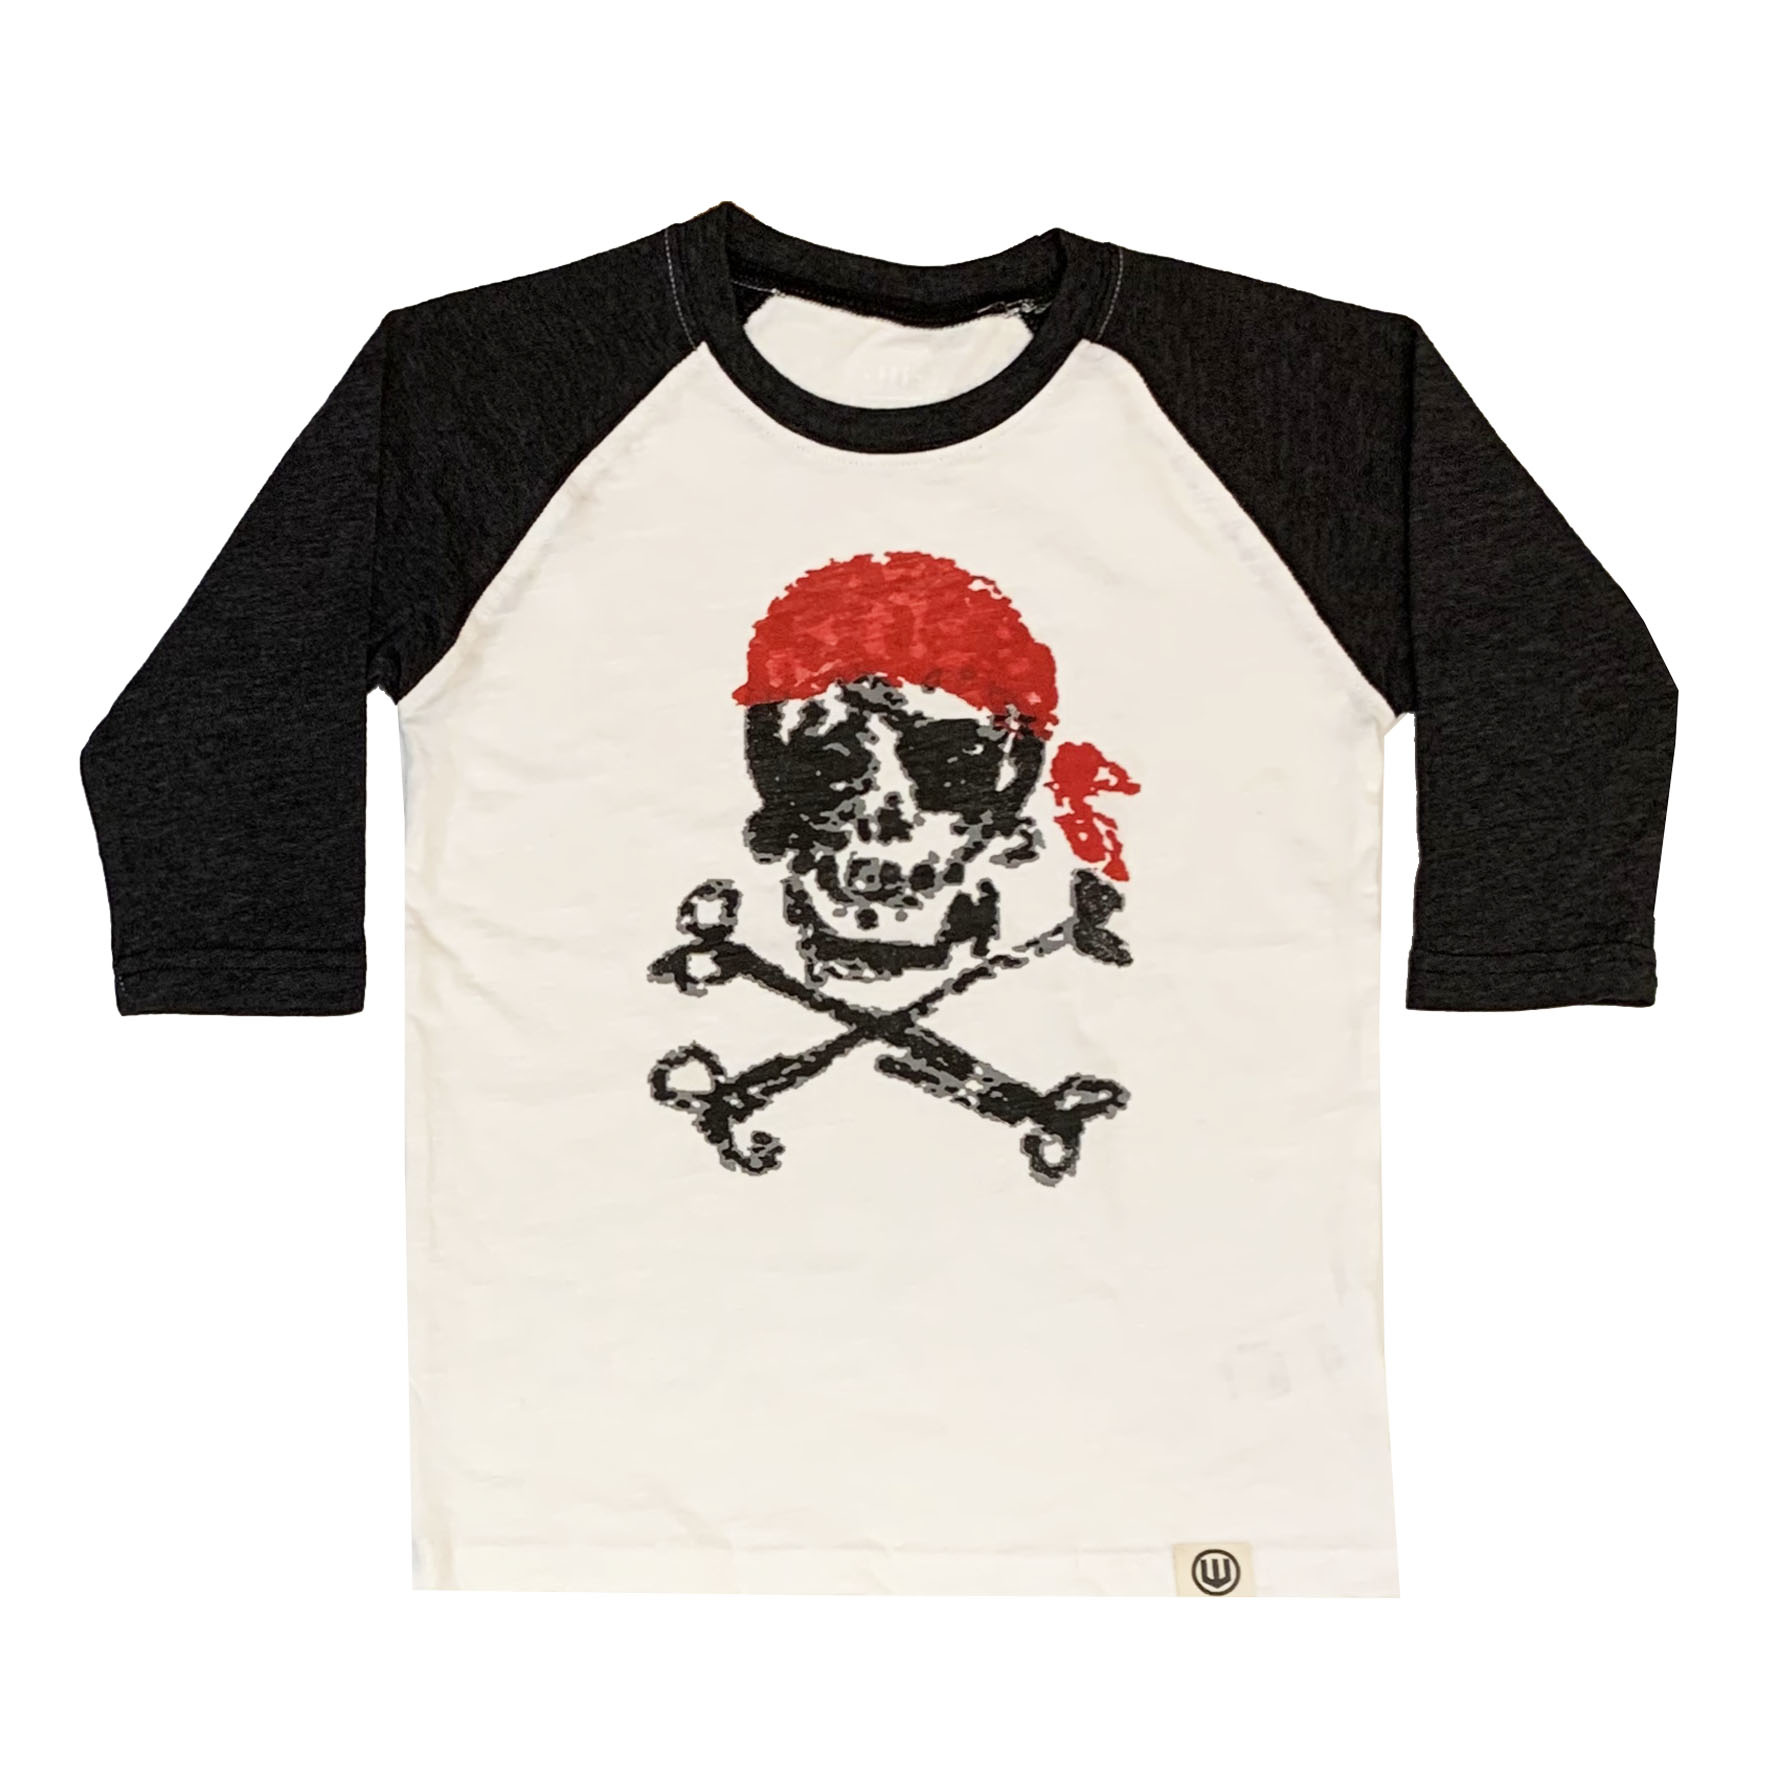 Wes & Willy Pirate Skull Raglan Top